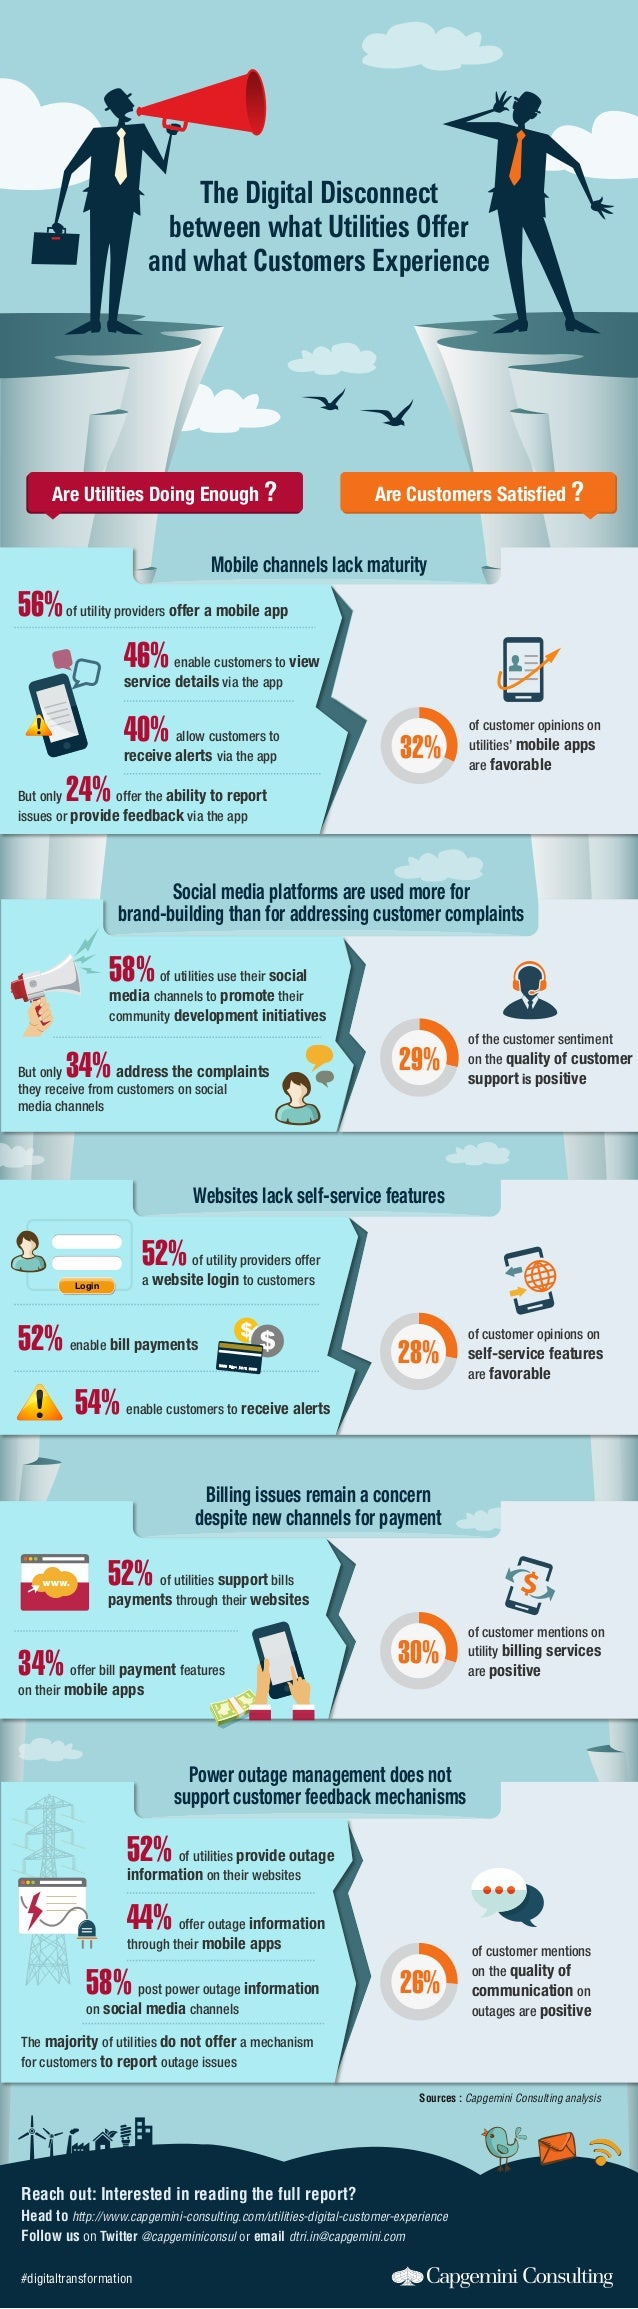 INFOGRAPHIC: The Digital Disconnect between what Utilities Offer and what Customers Experience